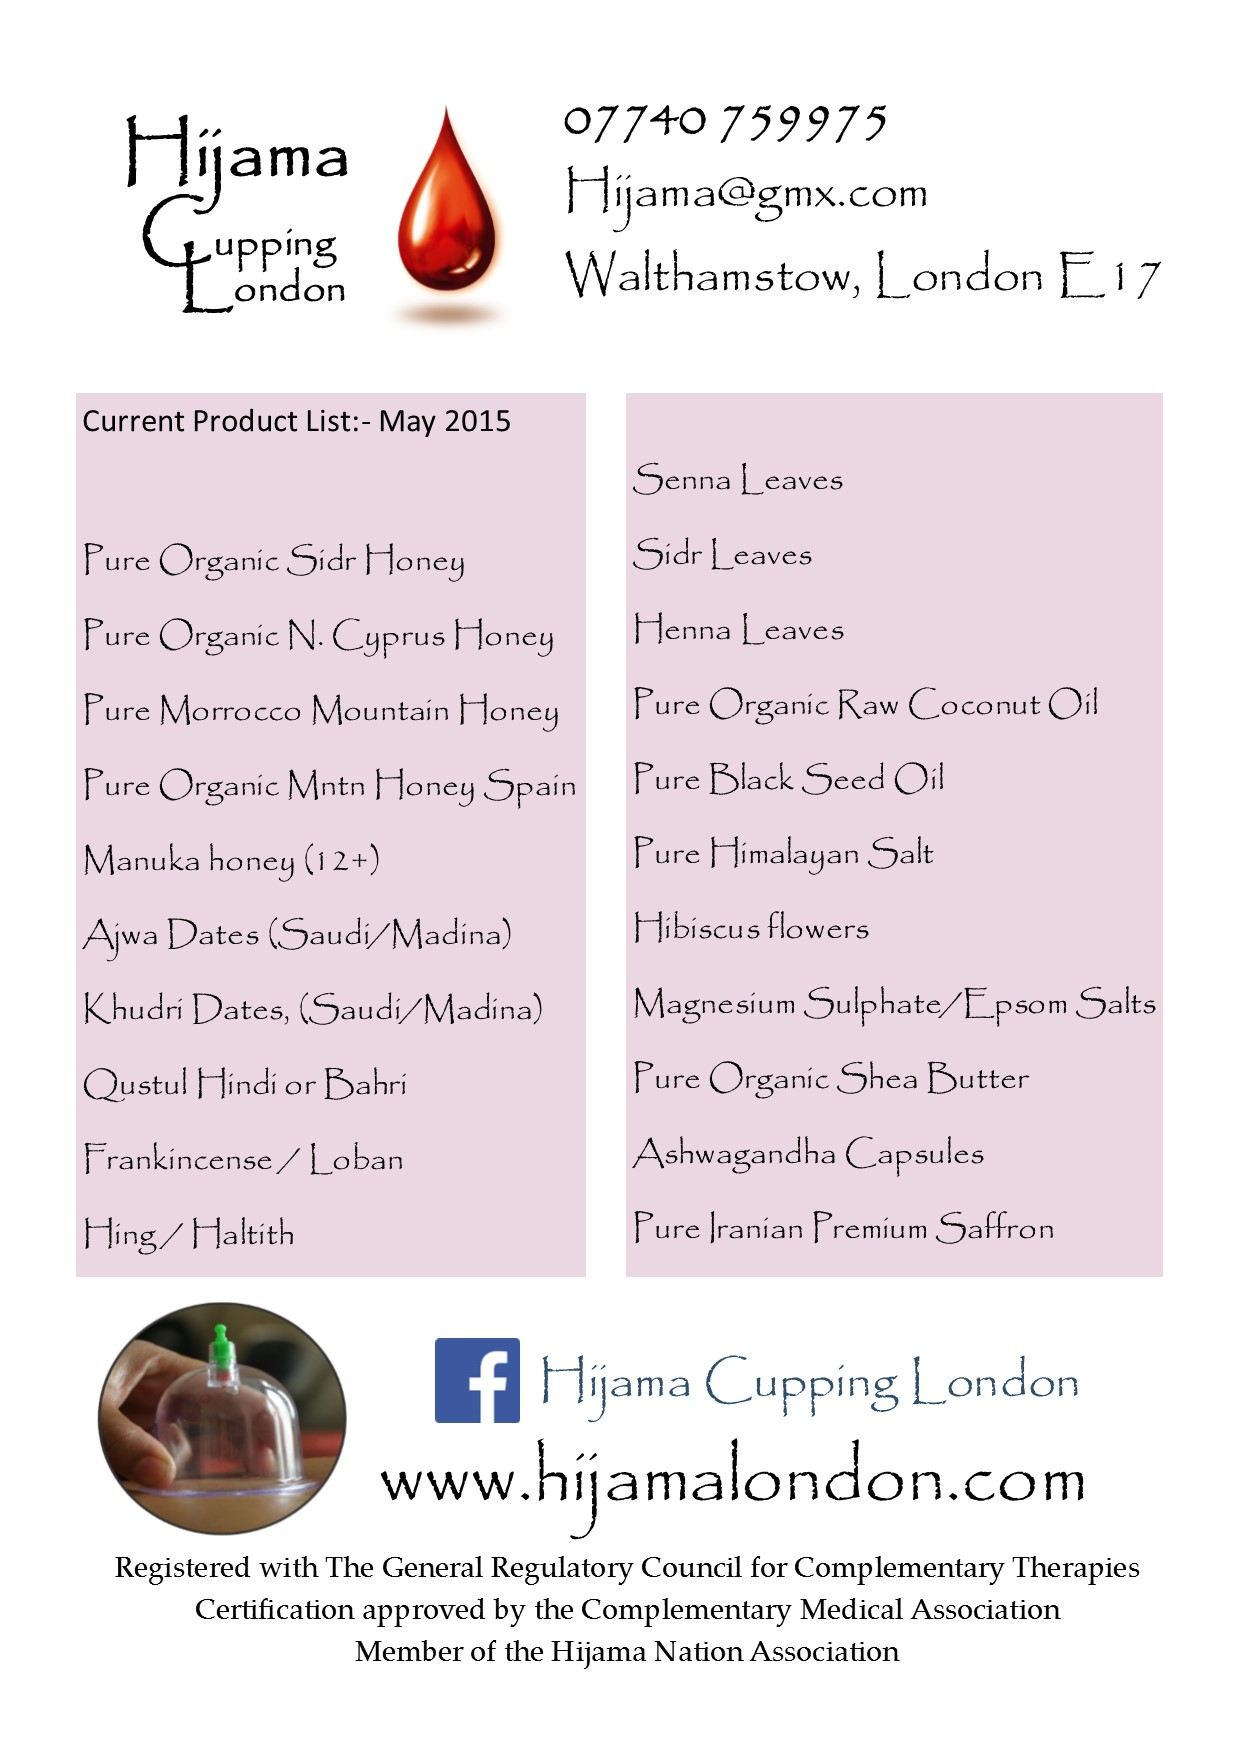 Hijama cupping london hijama cupping blog a4 hcl product list xflitez Gallery